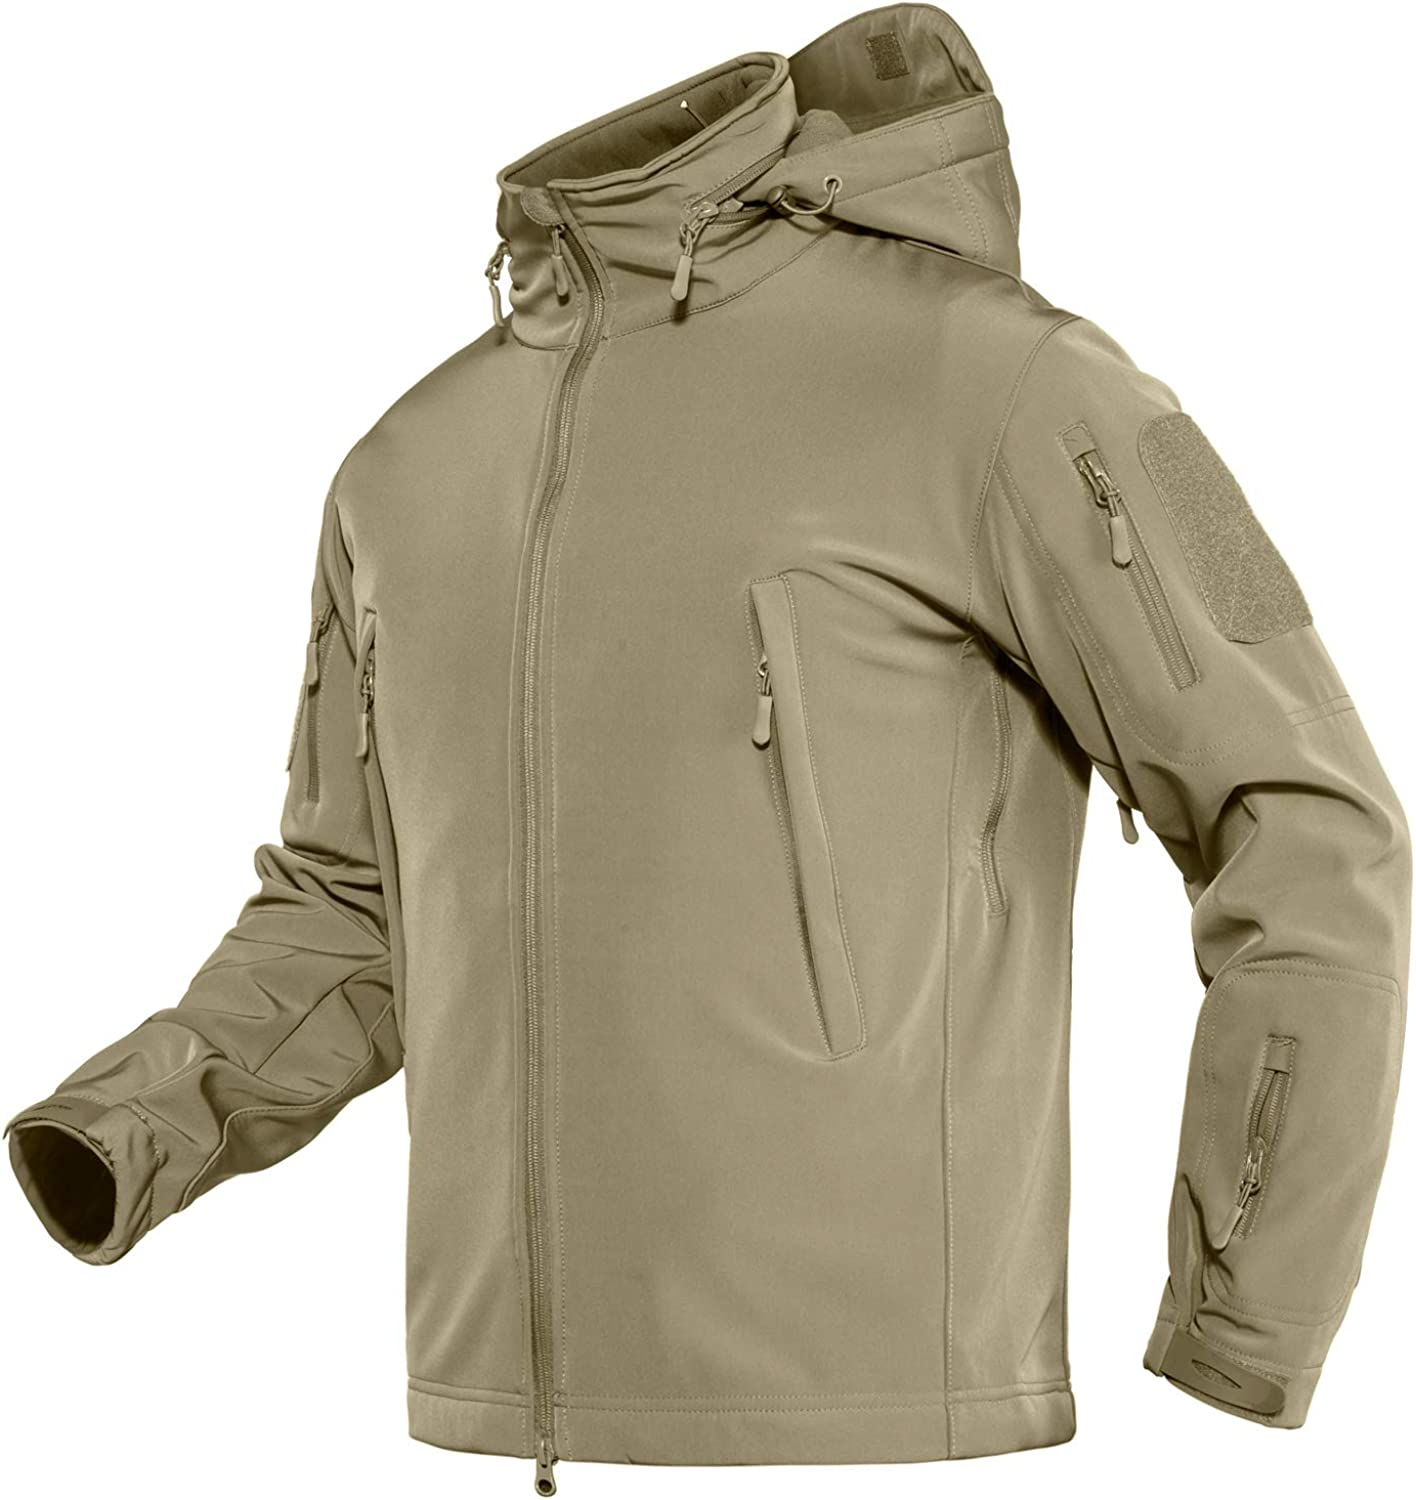 TACVASEN Men's Tactical Cheap mail order specialty Ranking TOP1 store Concealed Hooded Softshell Fleece Milita